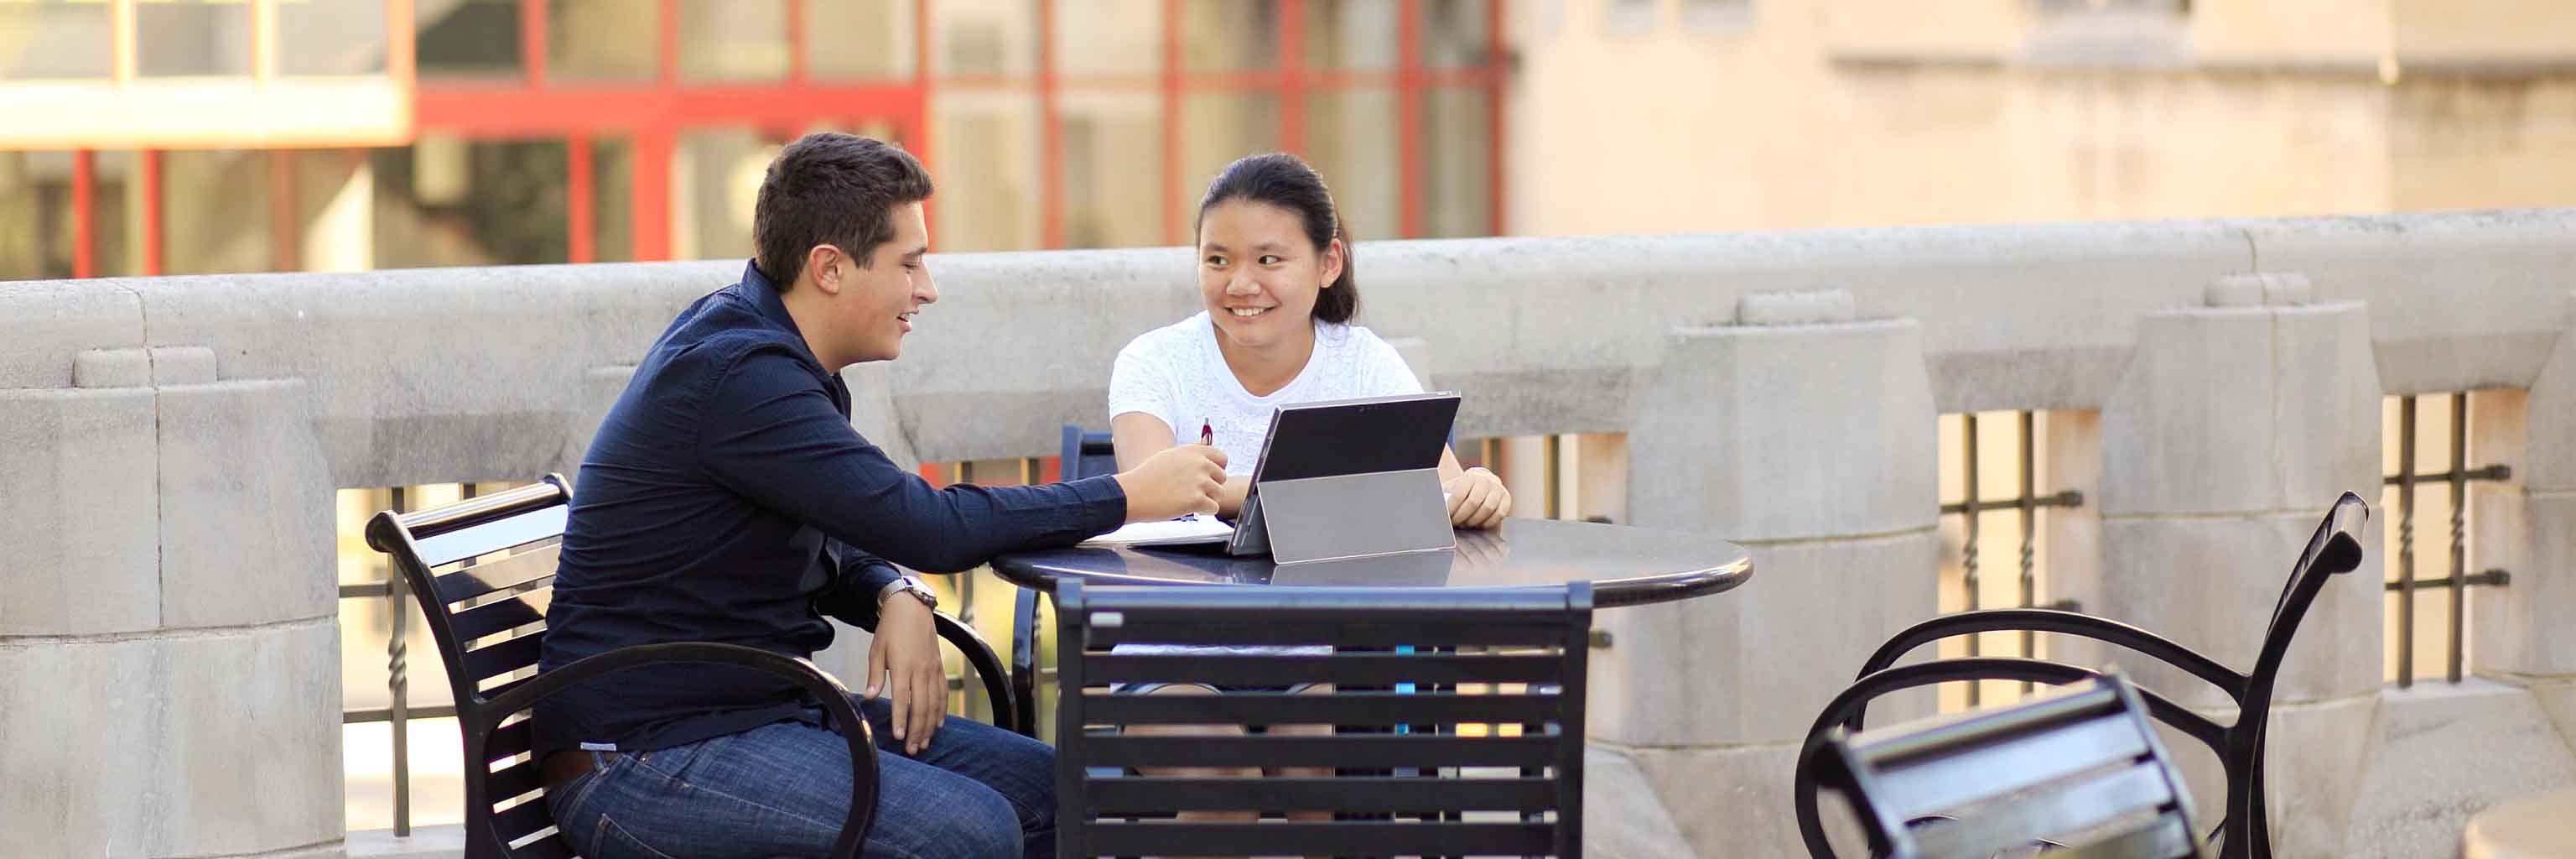 Two students talk at an outdoor table.